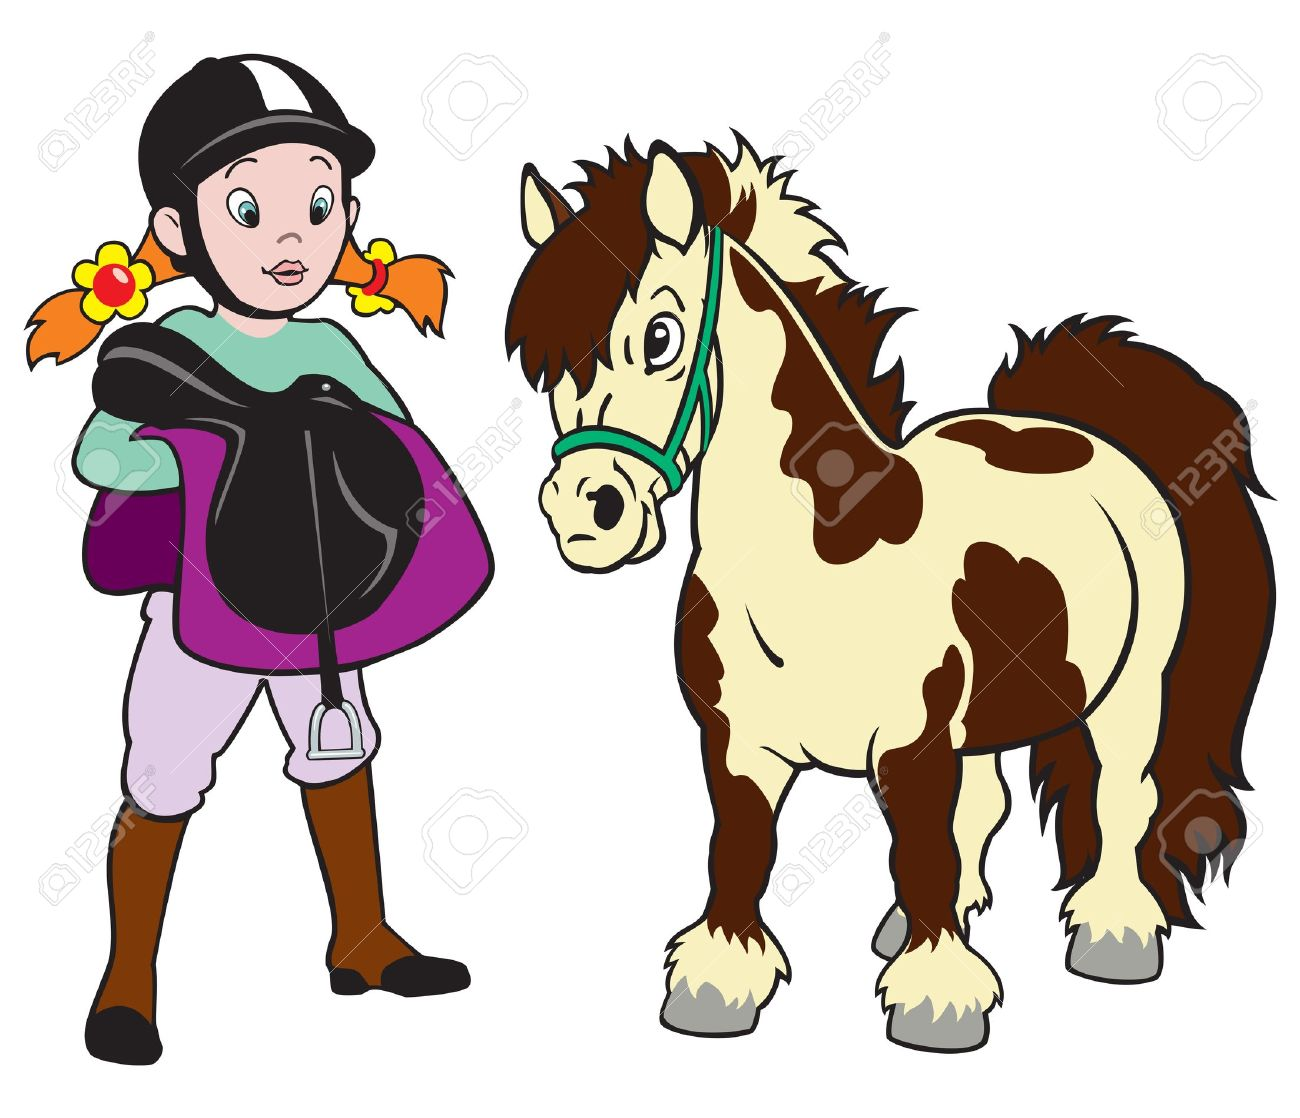 Clipart cavalier cheval clipground - Clipart cheval ...